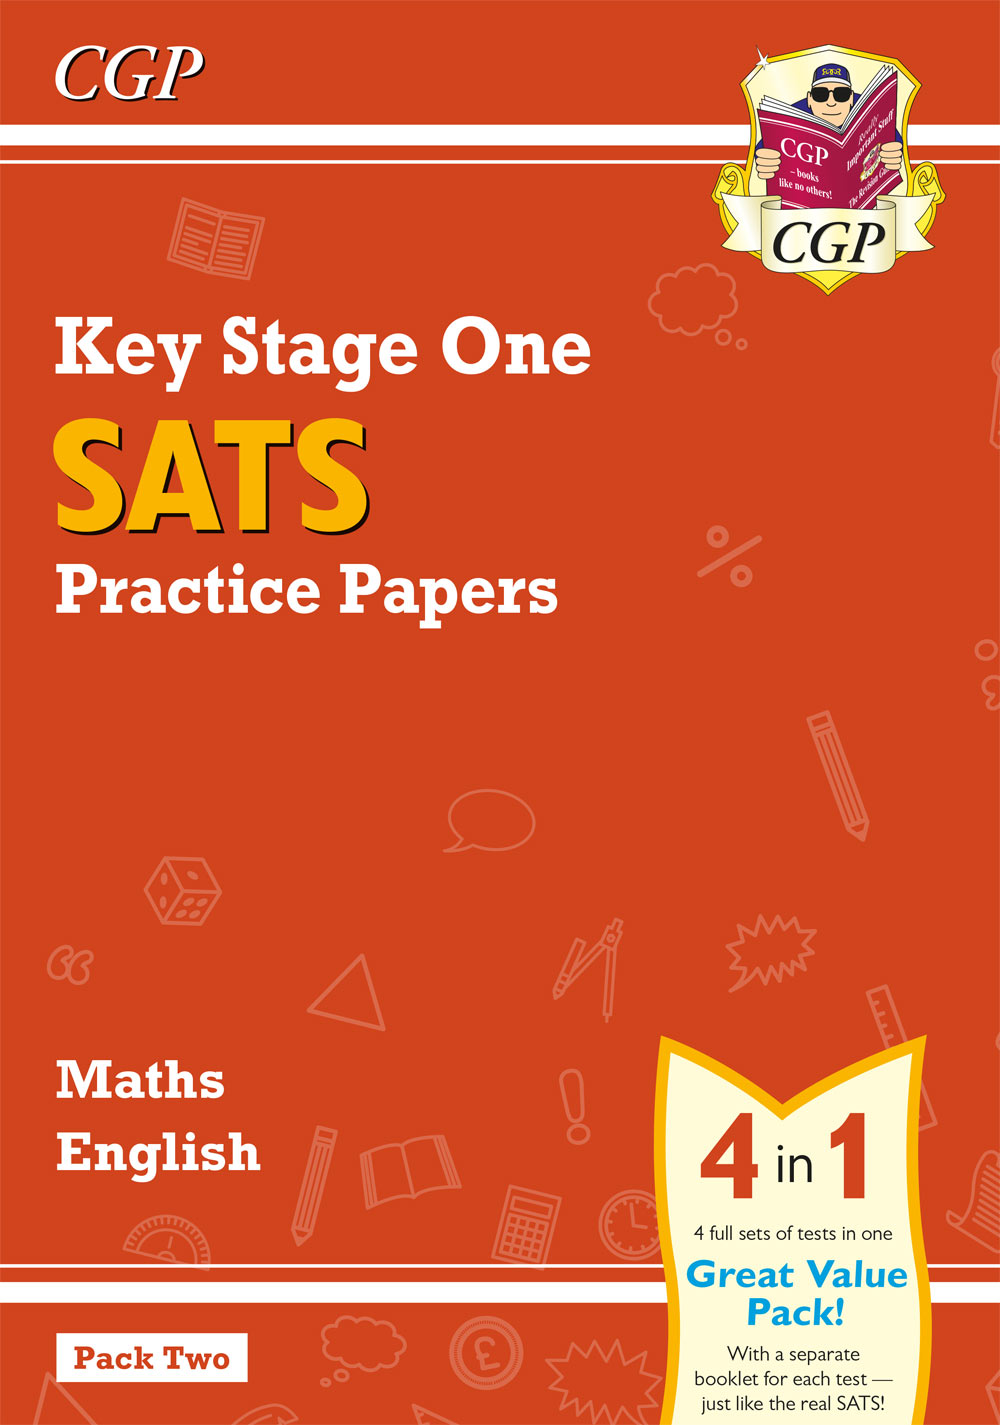 MEB213 - New KS1 Maths and English SATS Practice Papers Pack (for the 2020 tests) - Pack 2